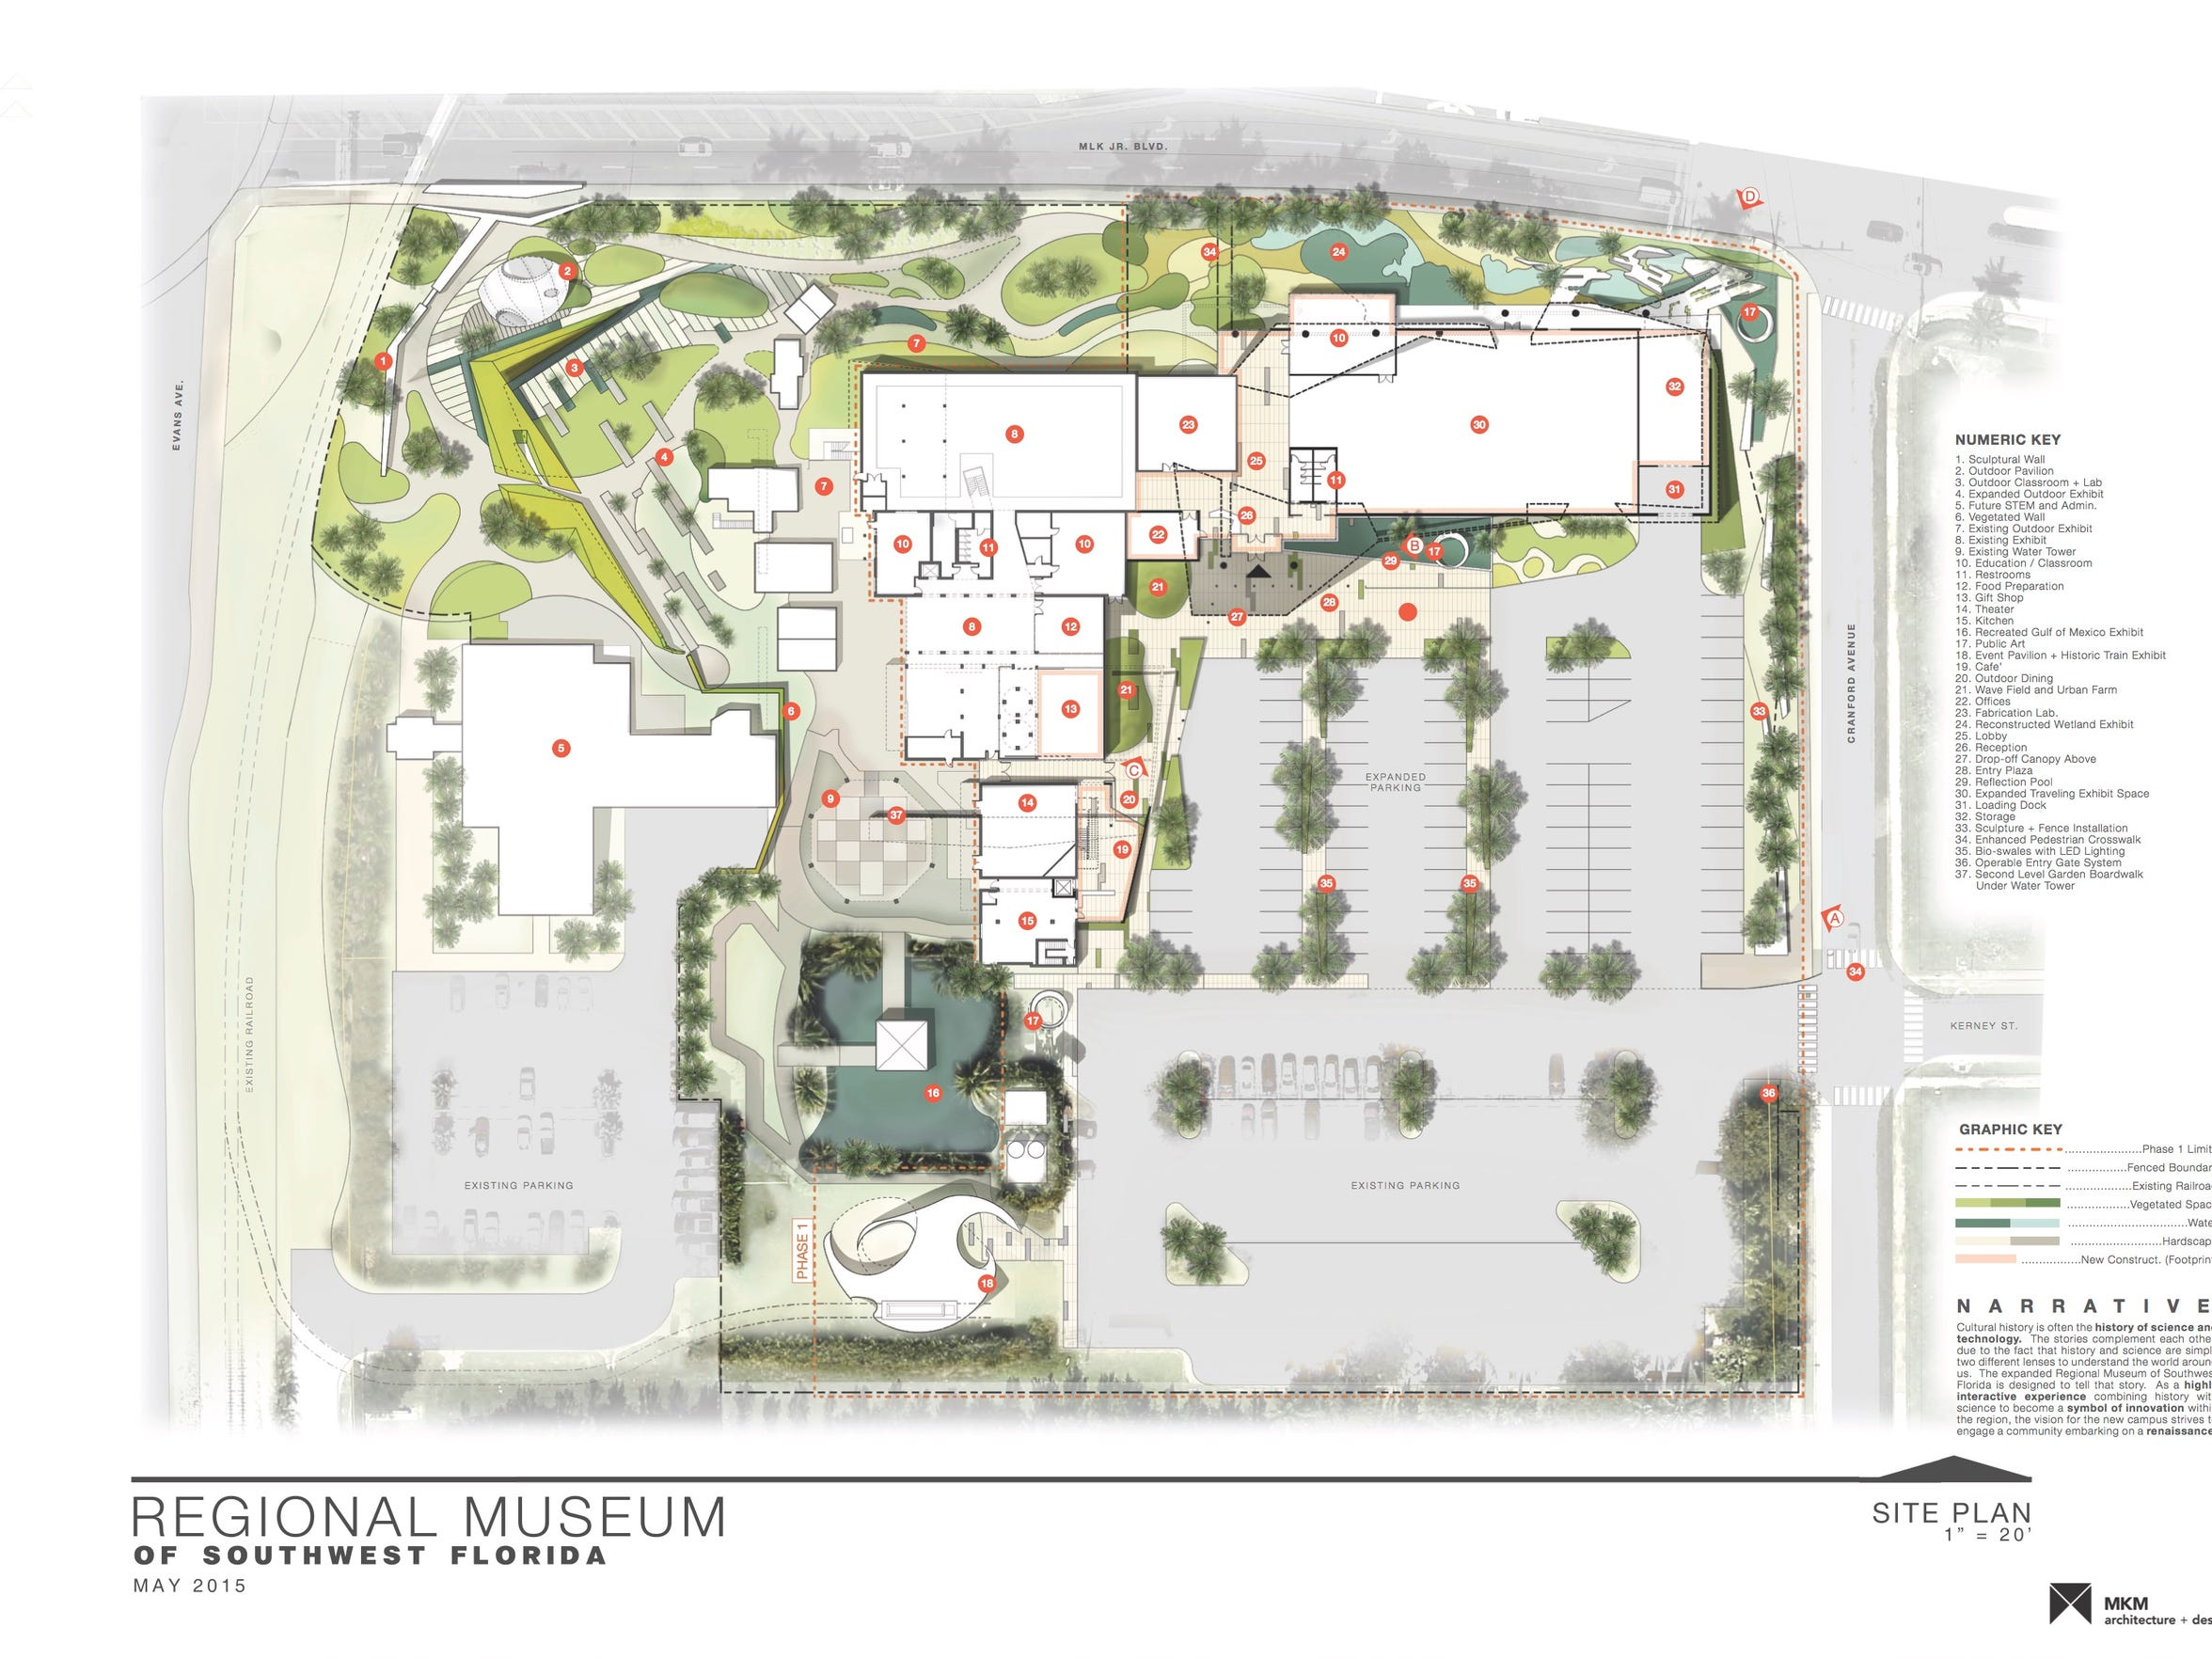 A site plan for an expanded and renovated Imaginarium